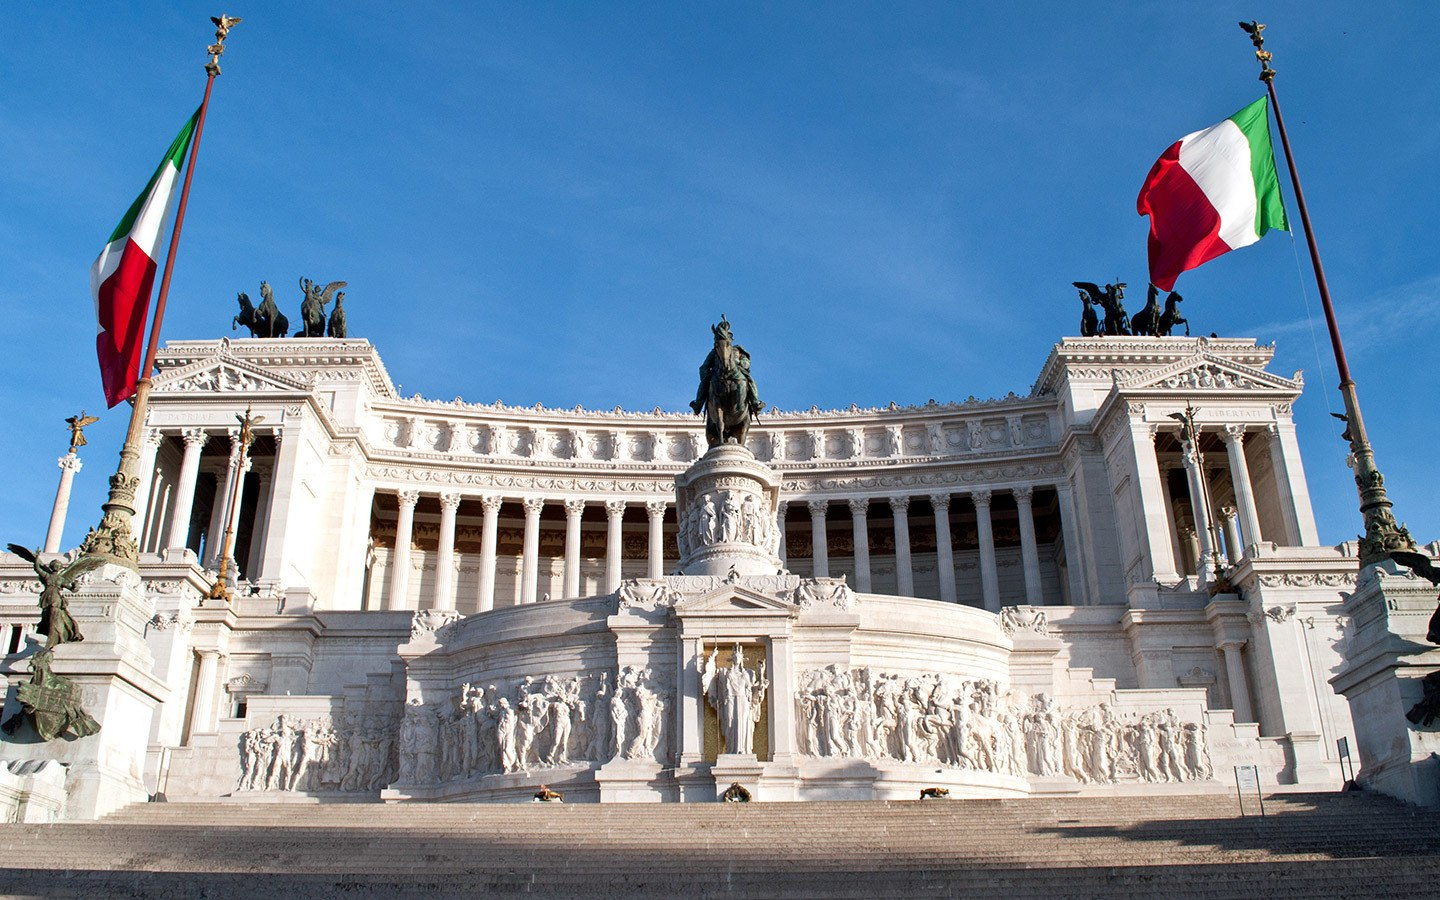 The Vittorio Emanuele II Monument in Rome